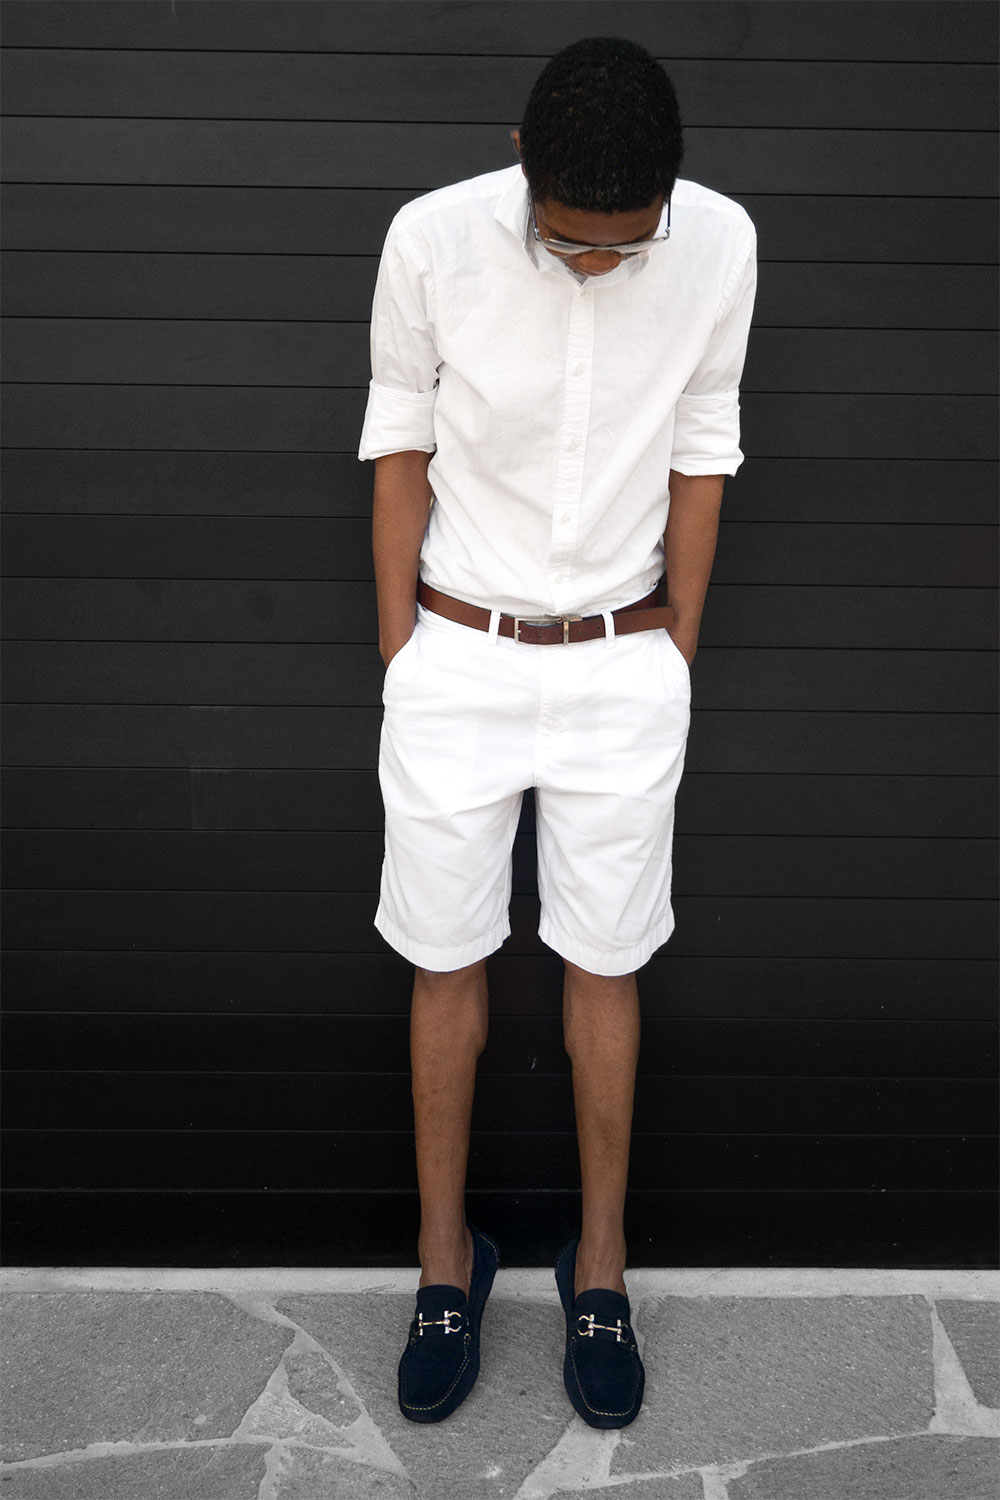 All white style paired with navy blue boat shoes